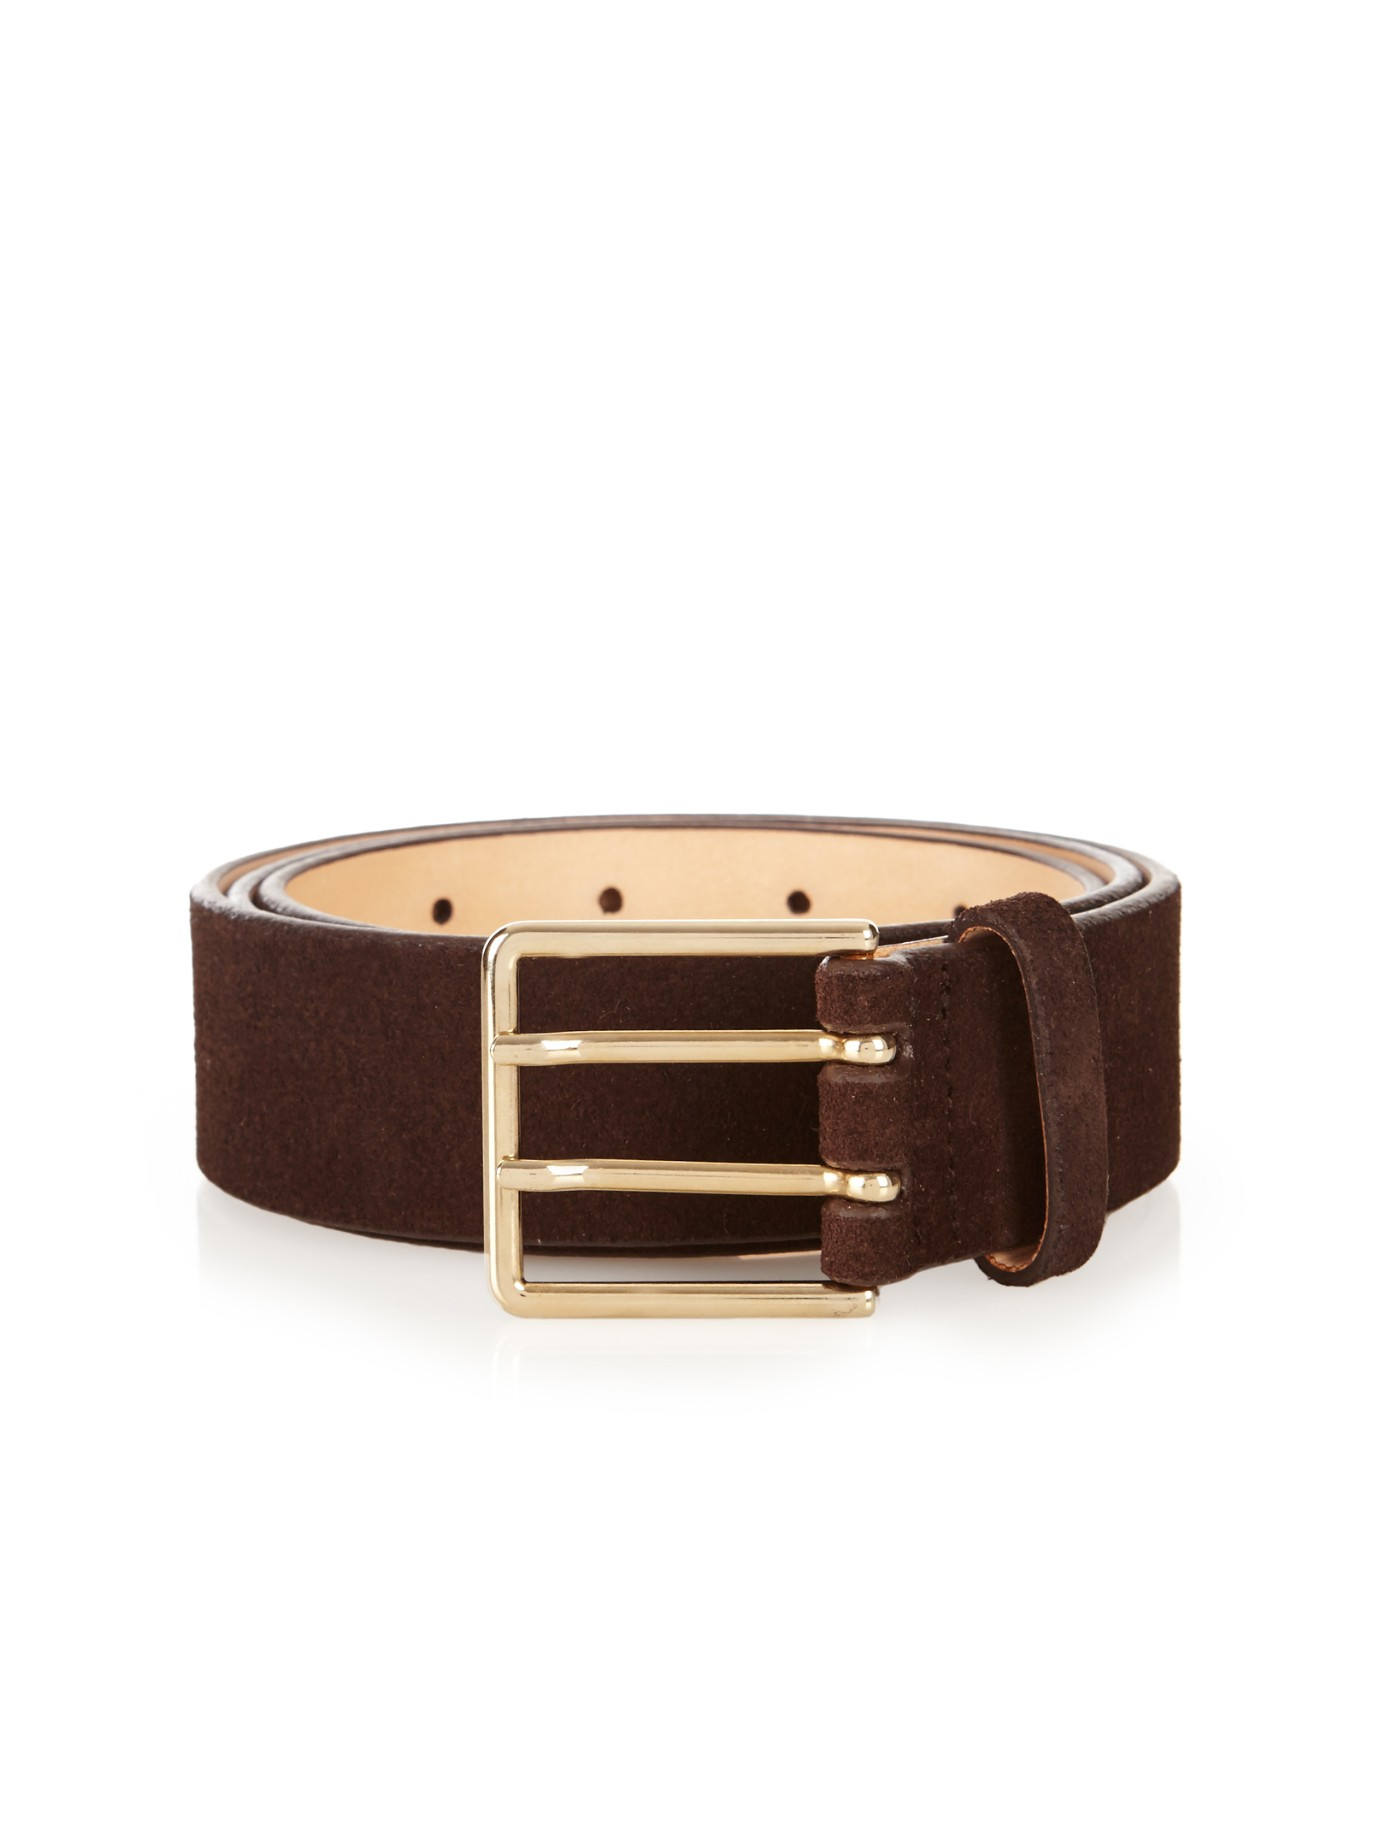 paul smith suede belt in brown for lyst